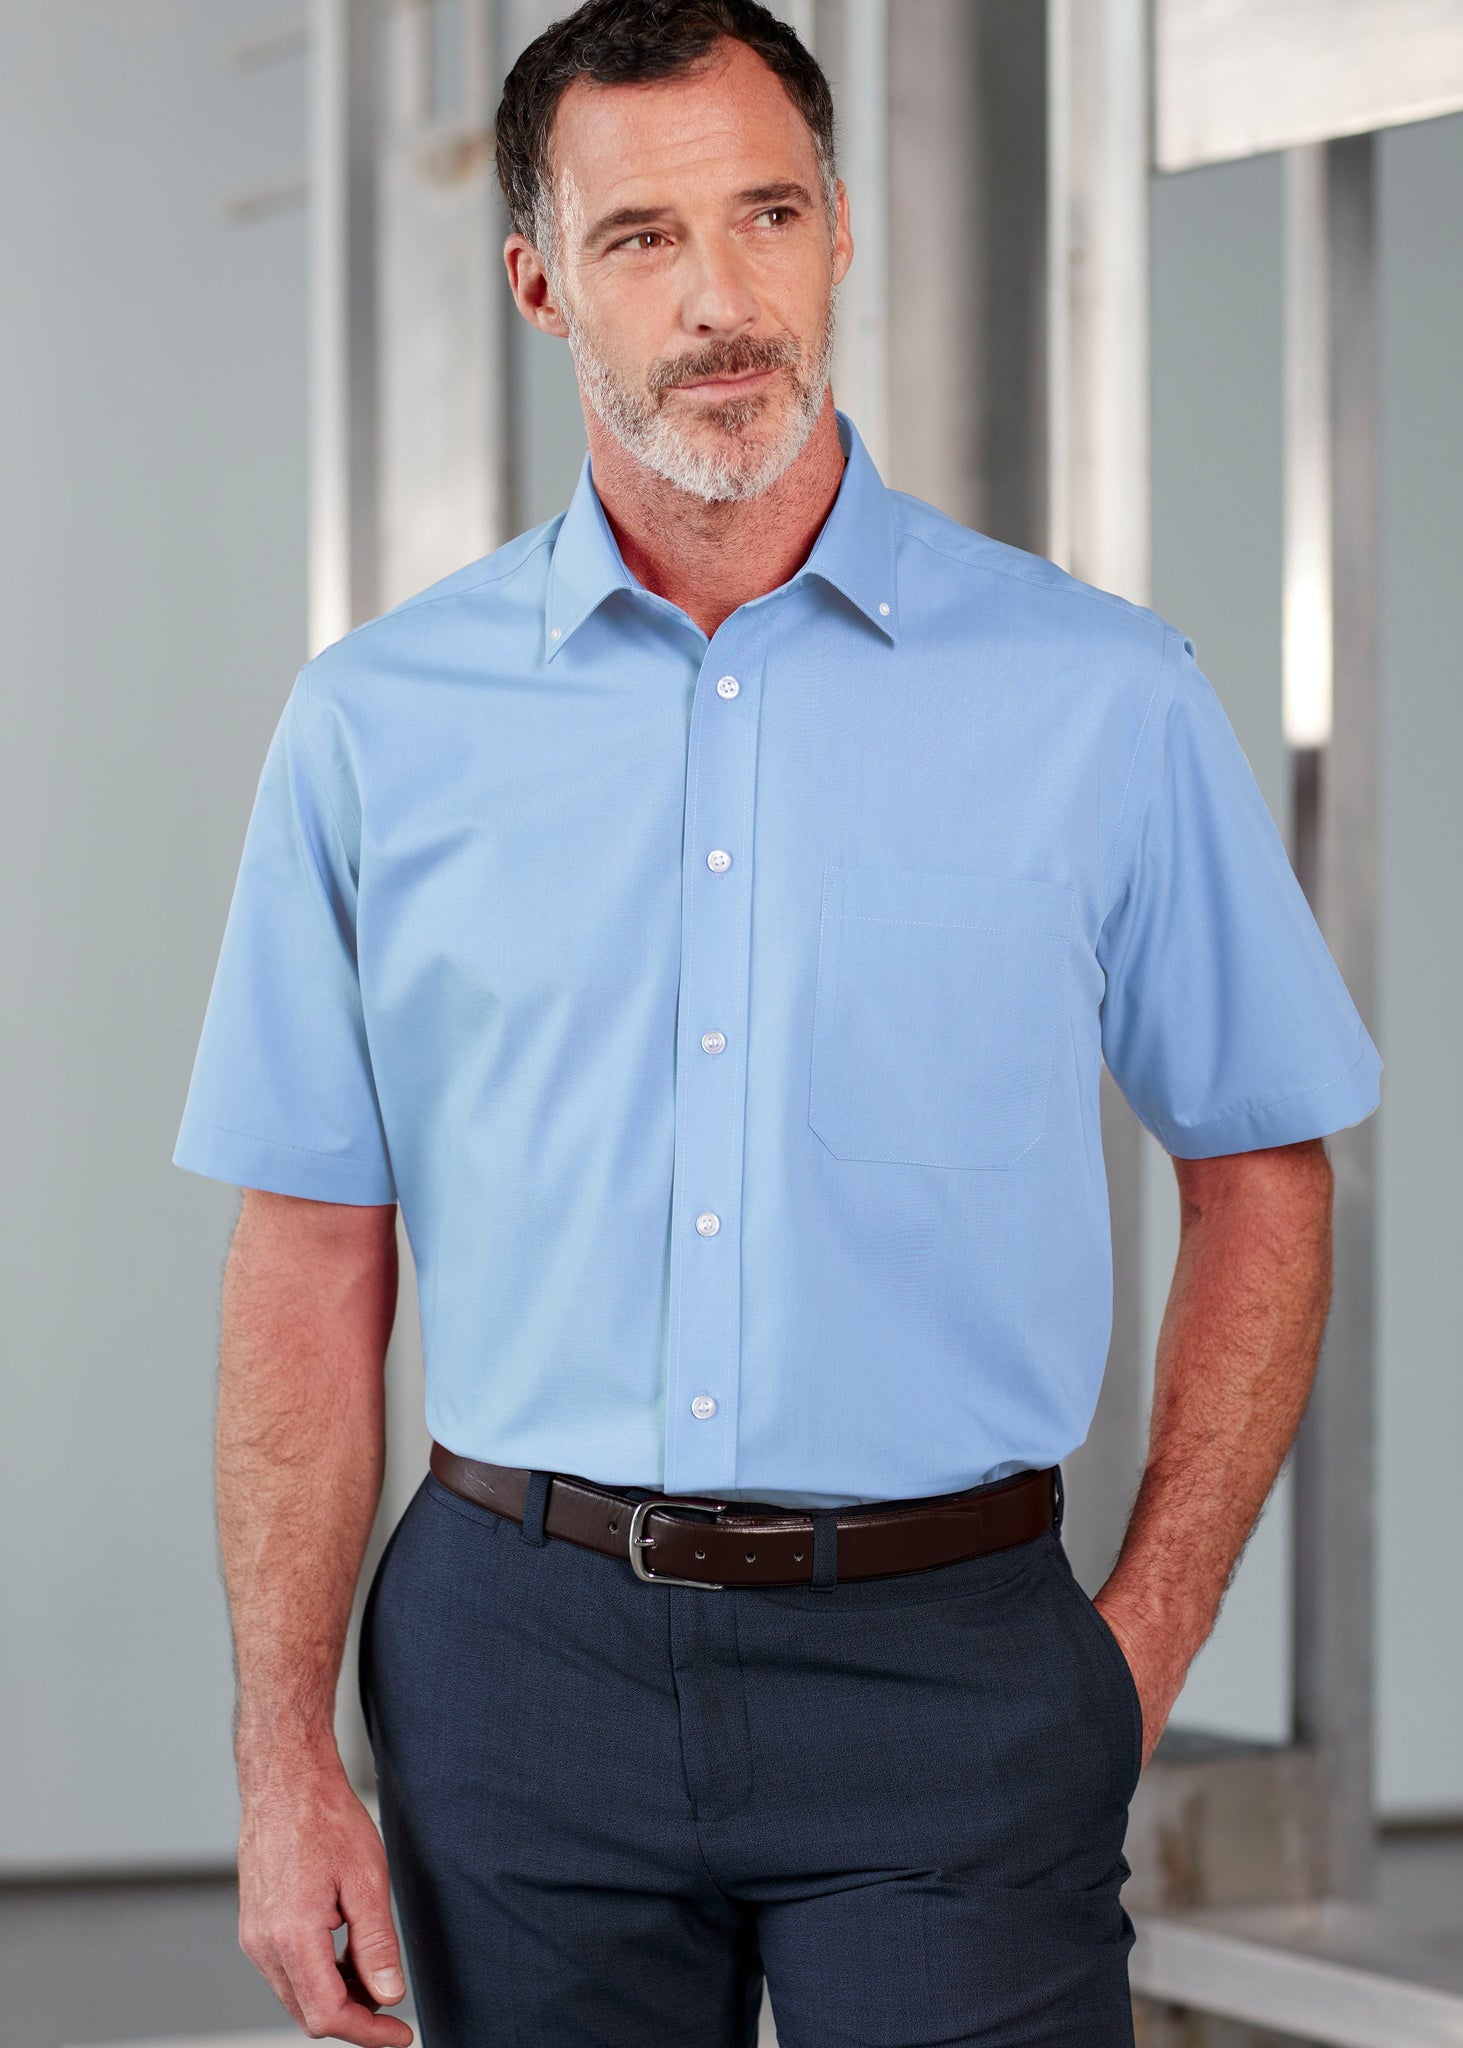 The Able Label Hugh Short Sleeve Classic Fit Oxford Non-Iron Velcro Shirt